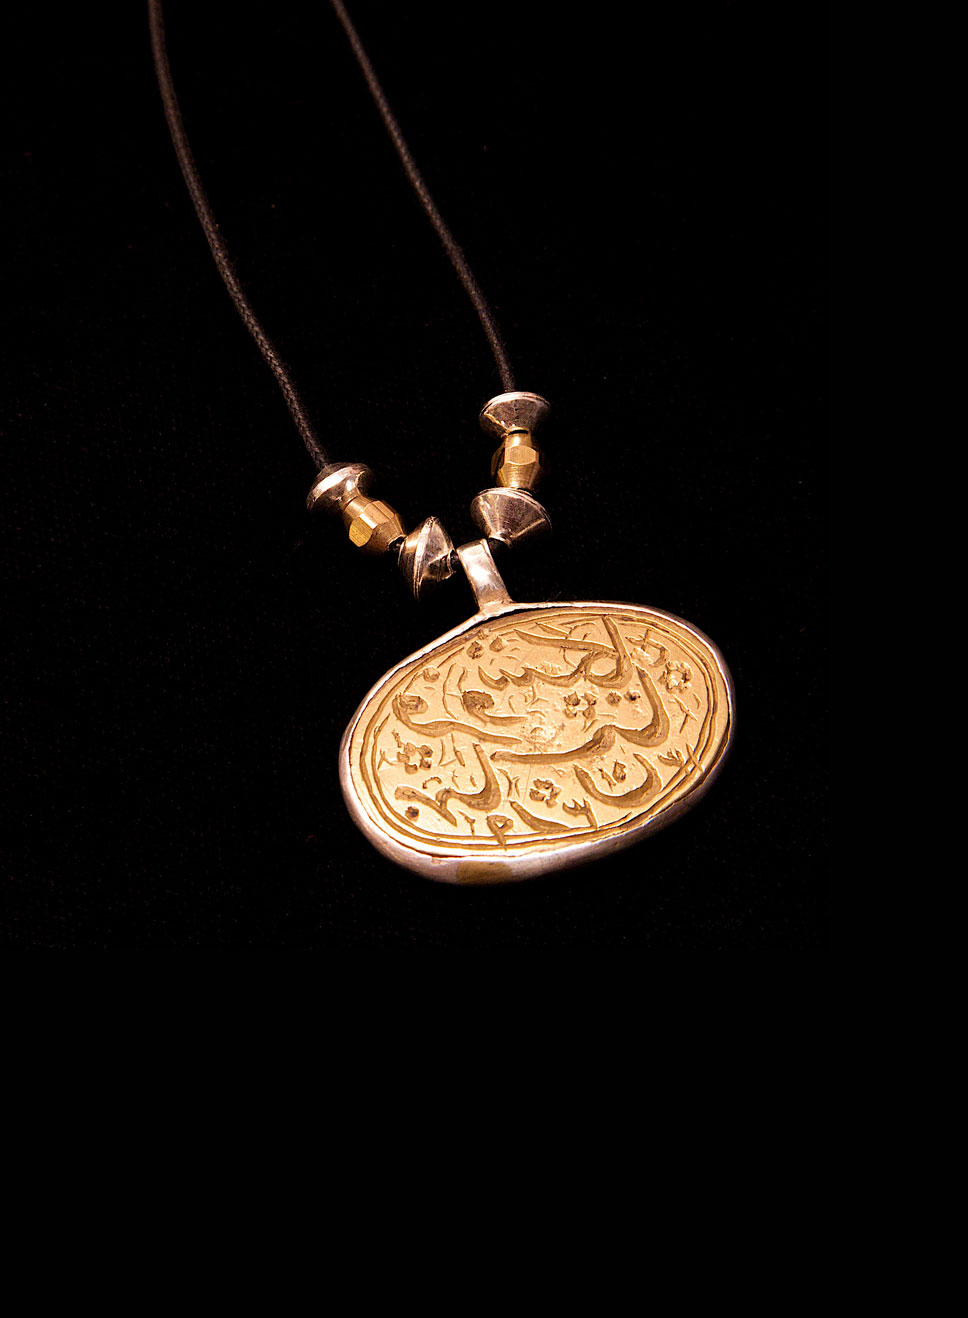 Brass antique Islamic prayer pendant set in silver on an adjustable thong. Pendant height- 4cm. Width- 5cm.